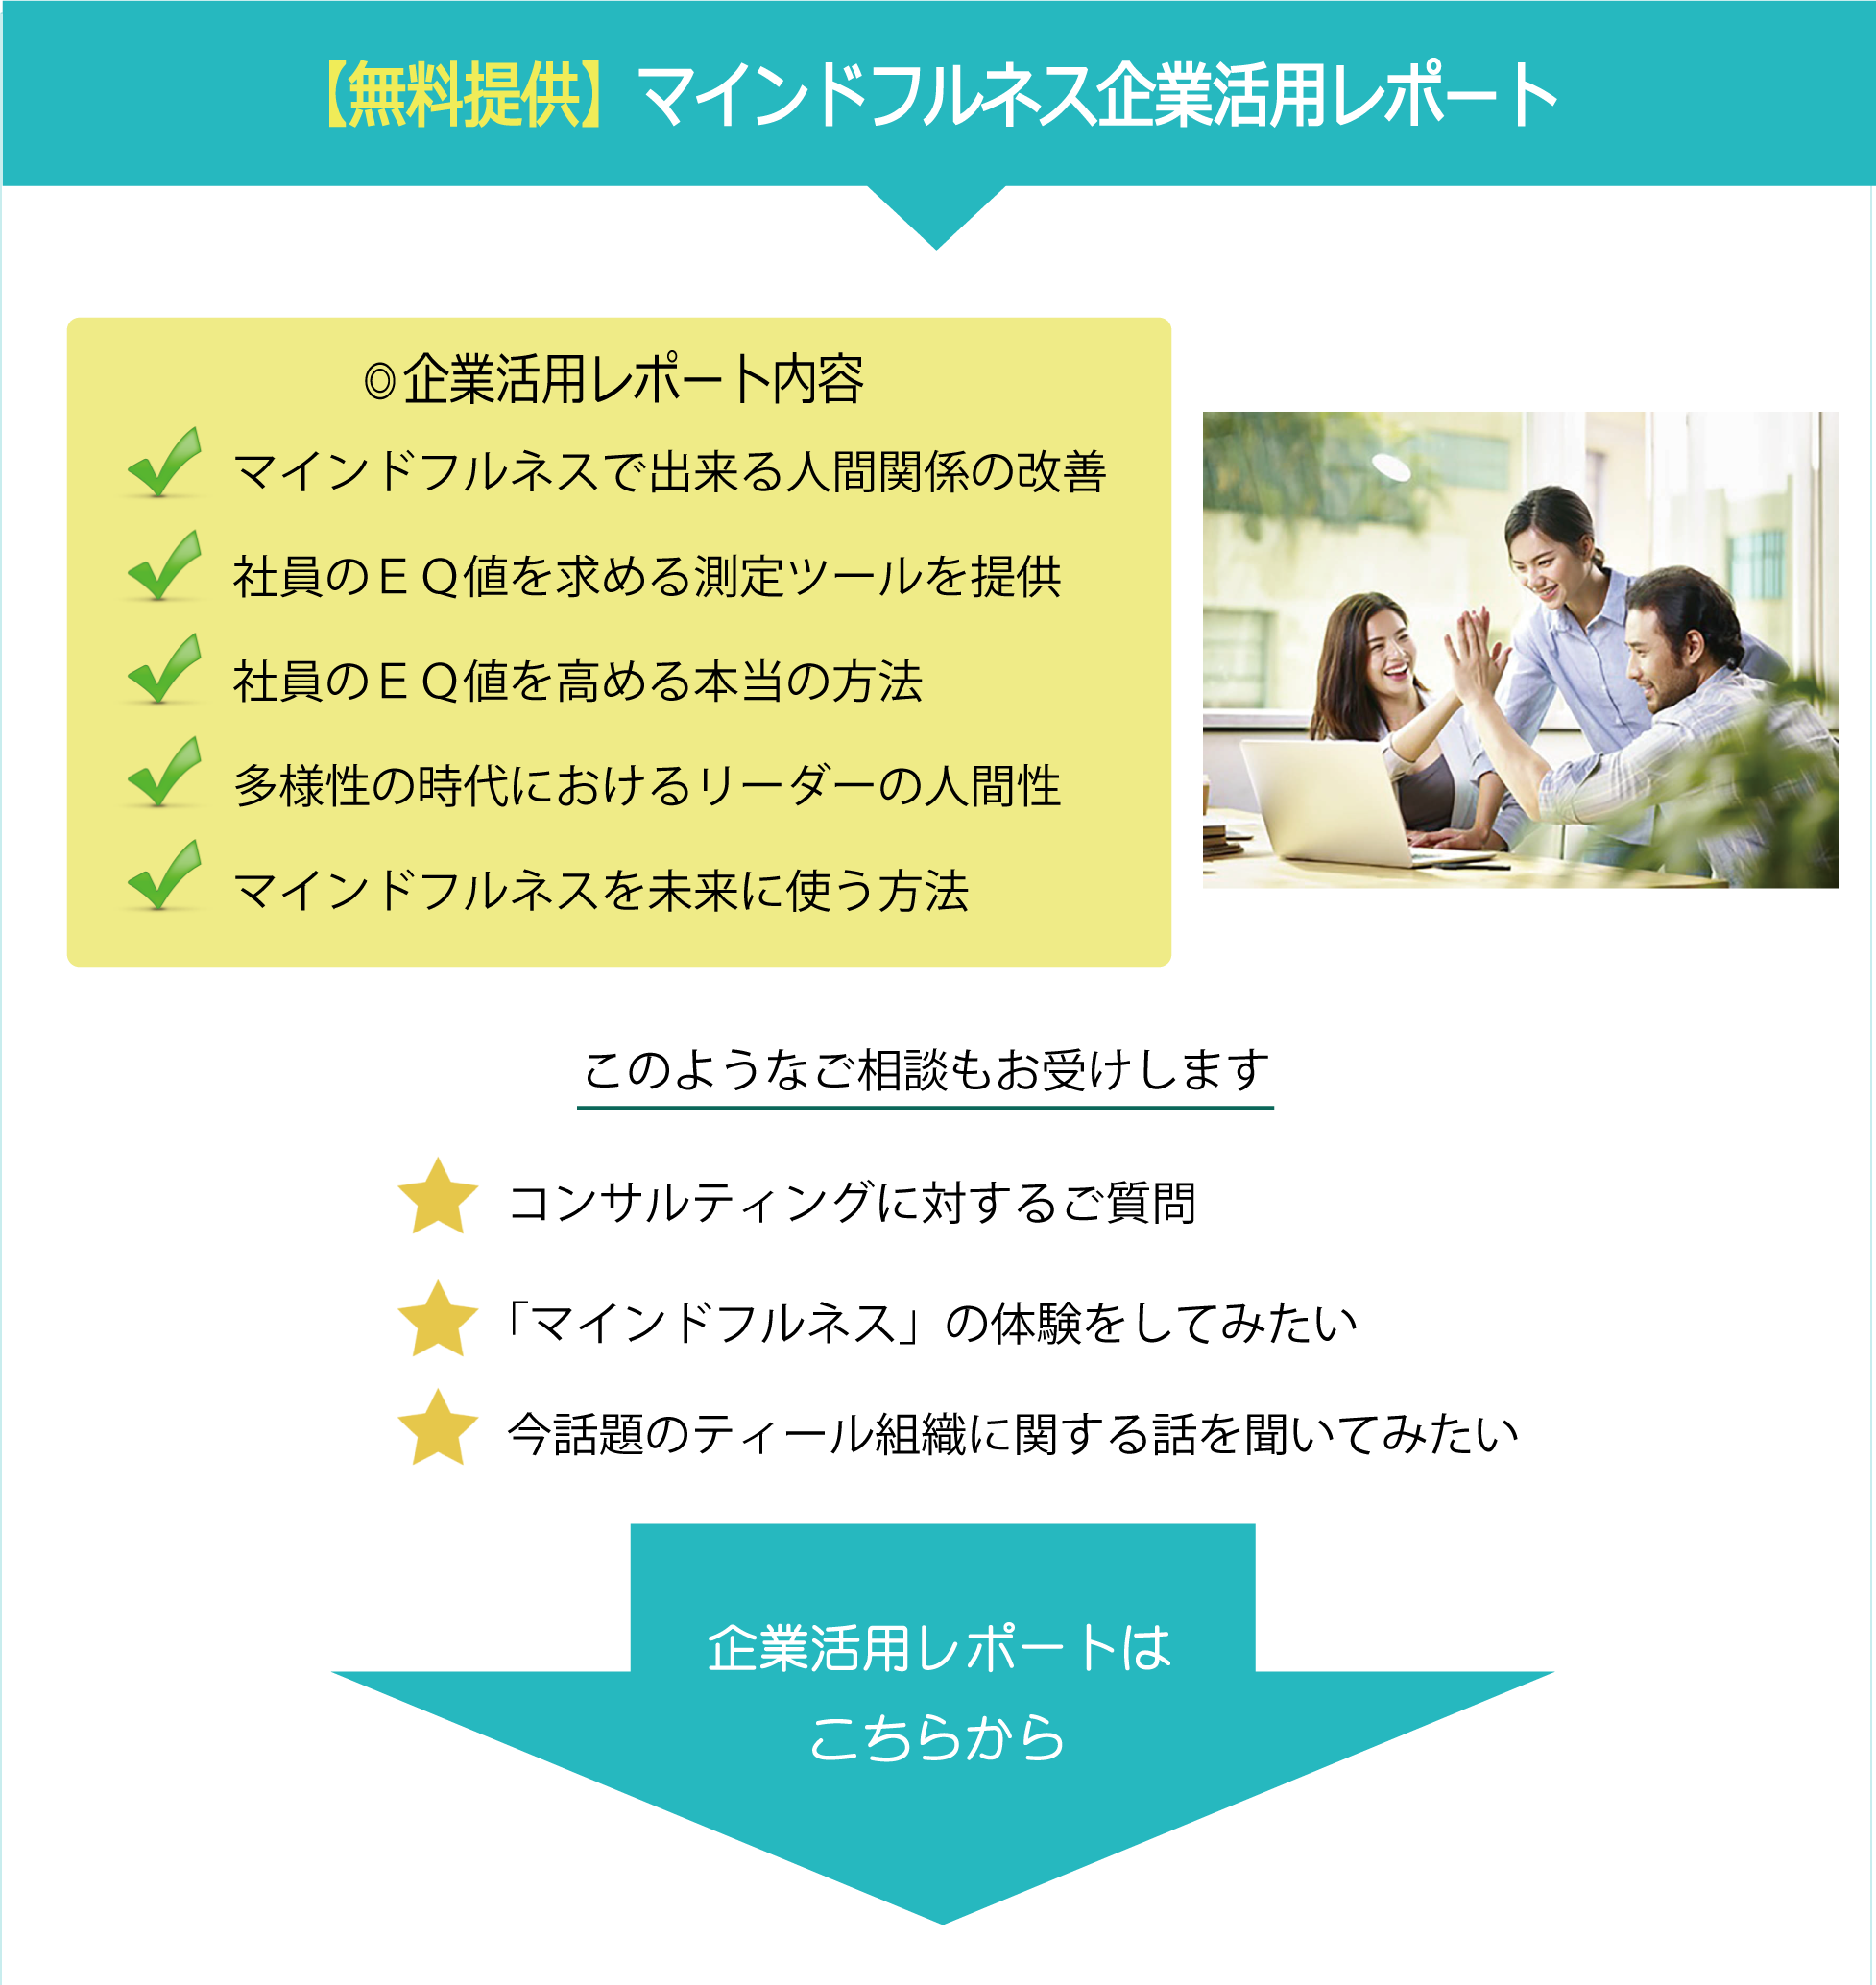 """mind10 <span style=""""font-size: 24pt; color:#E2faeb4;"""">企業コンサルティング</span>"""